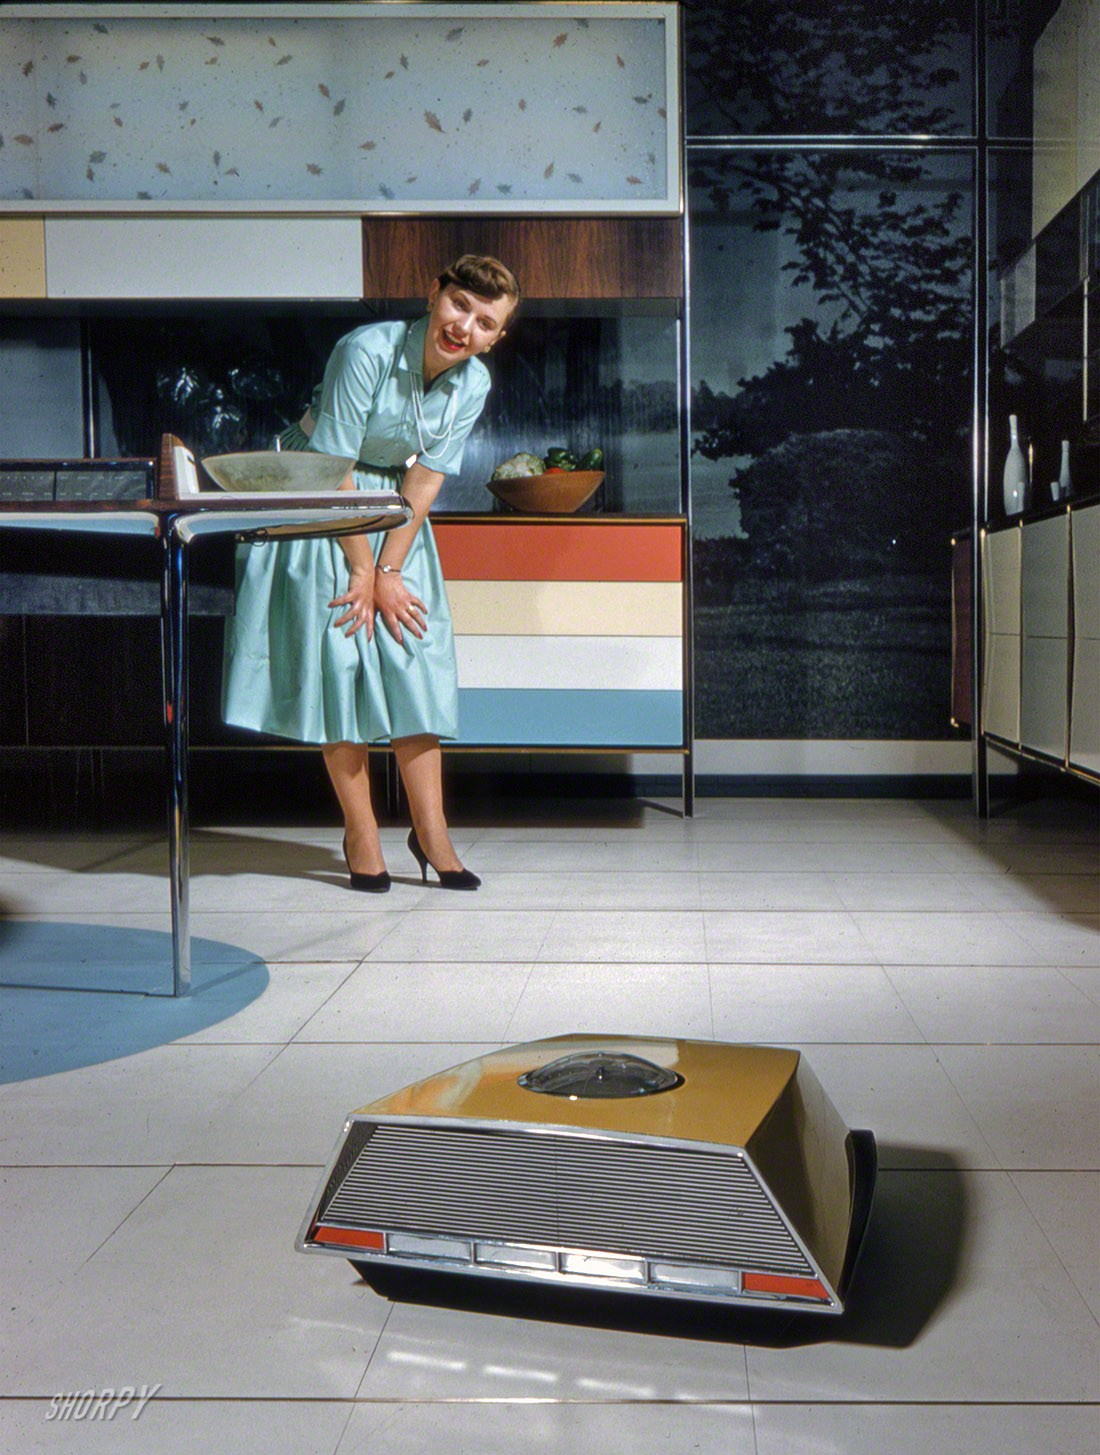 1959 Whirlpool Miracle Kitchen of the Future a display at the American National Exhibition in Moscow